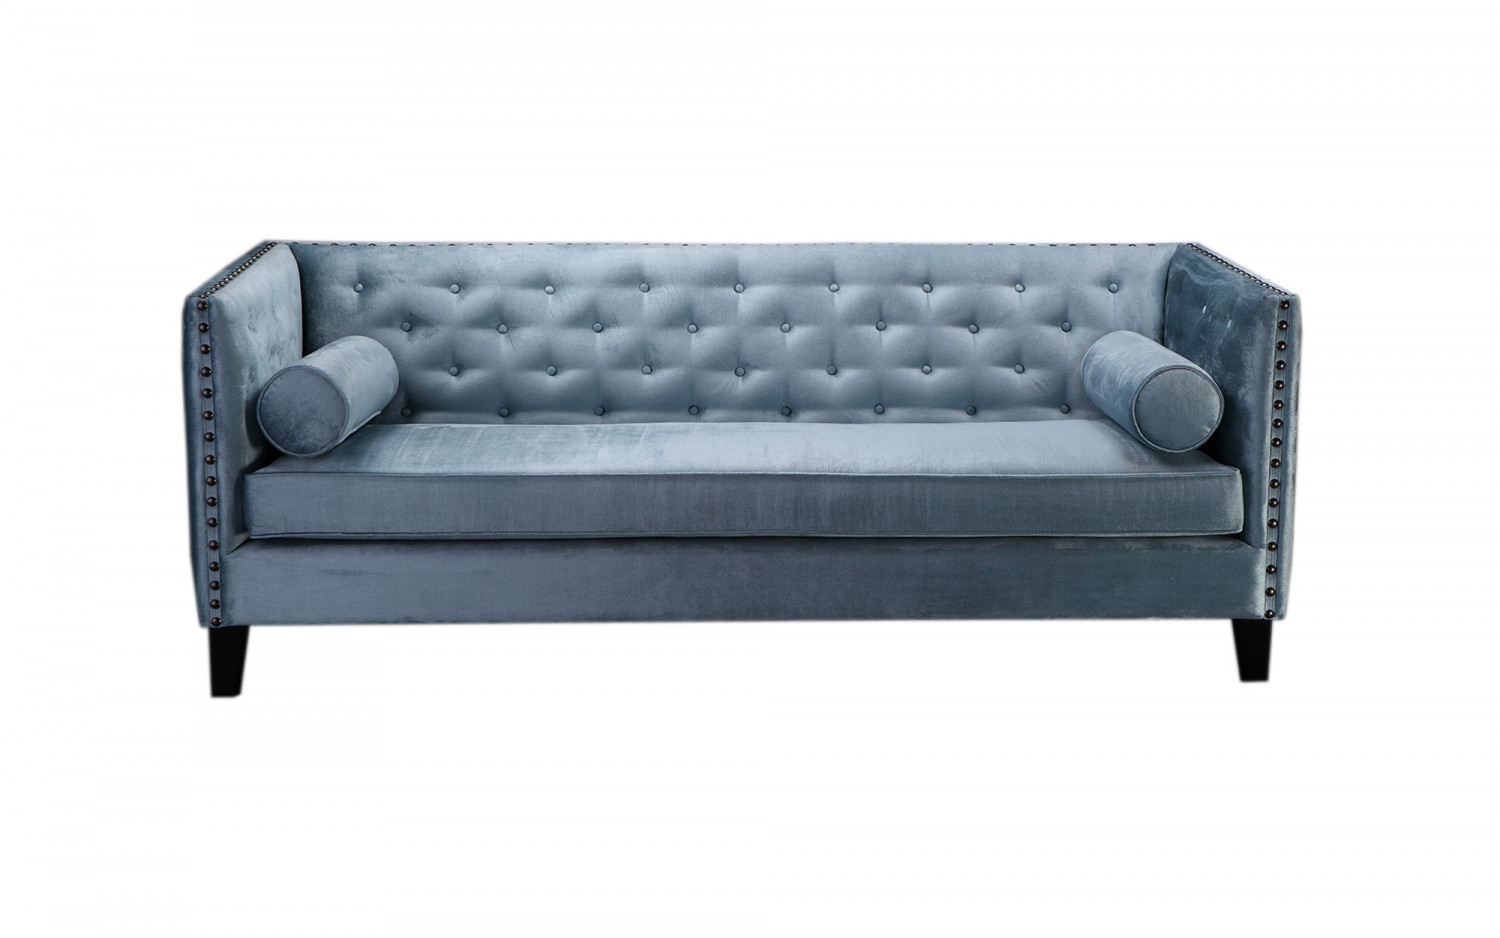 Sofa kinder magisch design association npo originell